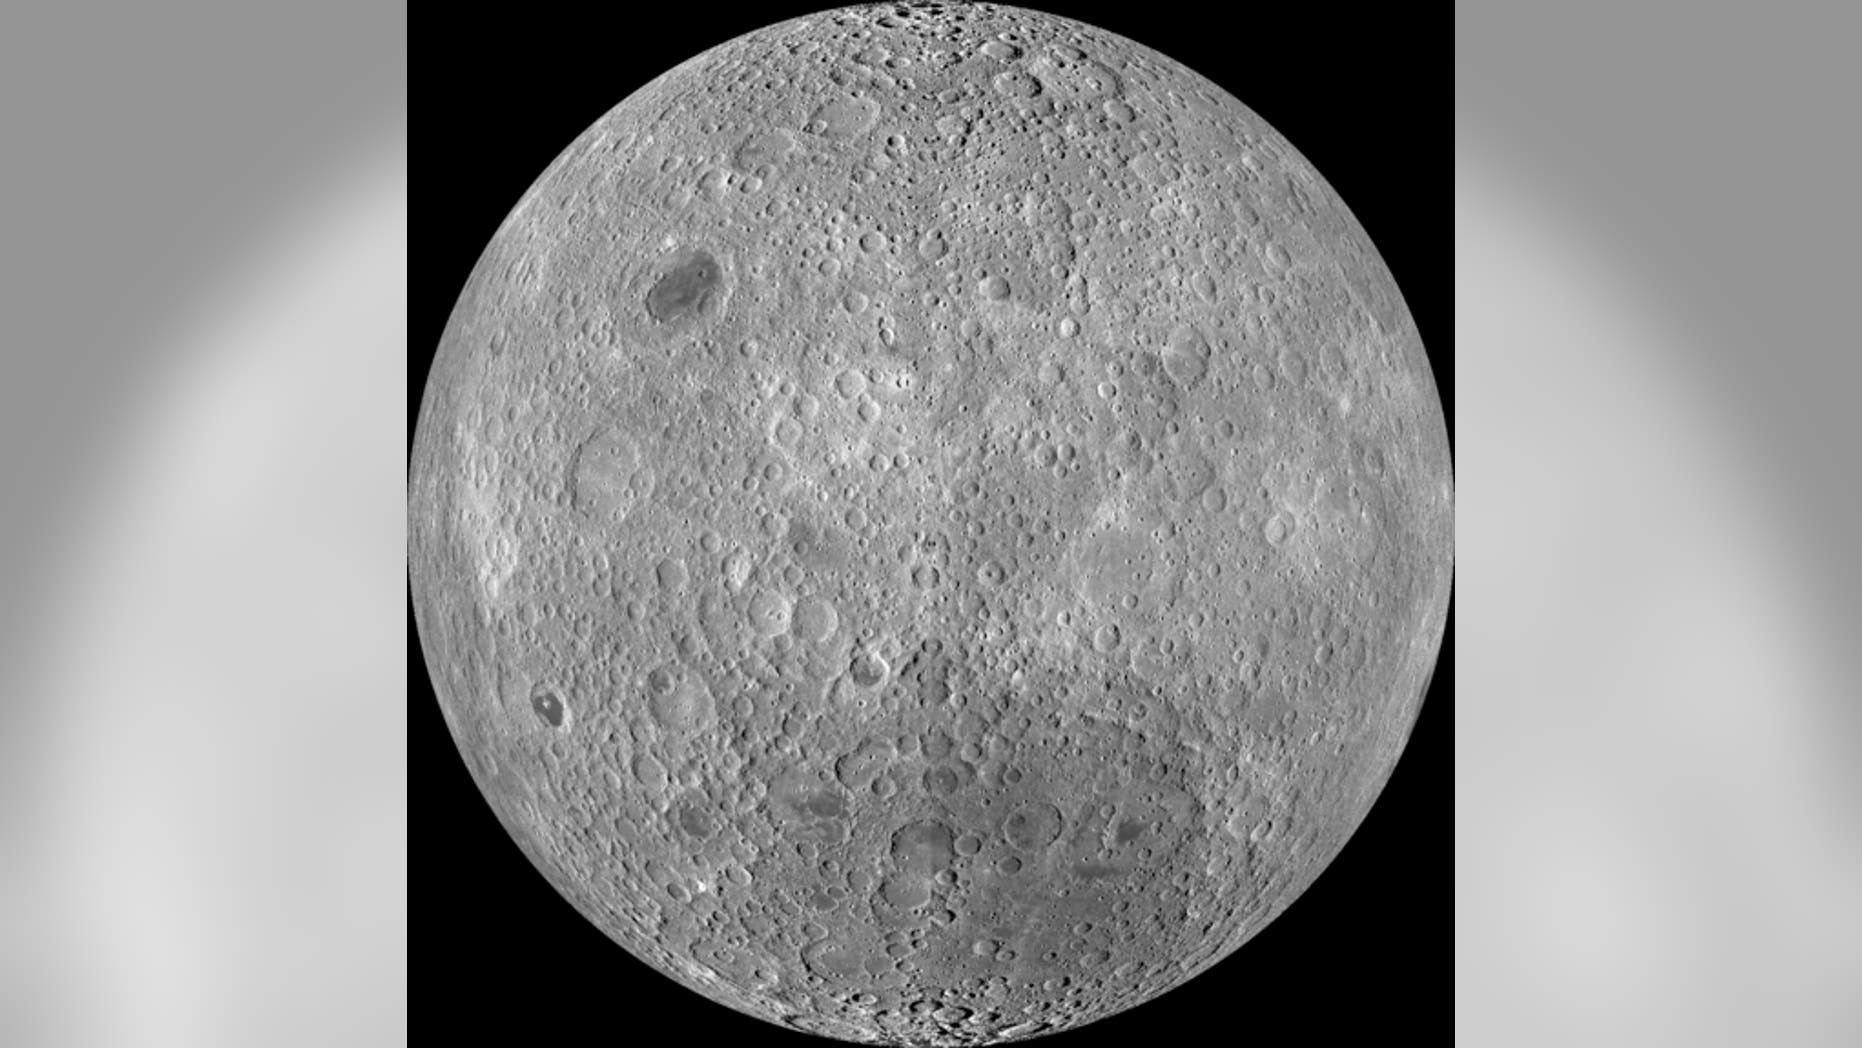 """The far side of the moon, often mistakenly called the """"dark side"""" though it receives just as much sunlight as the near side, as imaged by NASA's Lunar Reconnaissance Orbiter."""